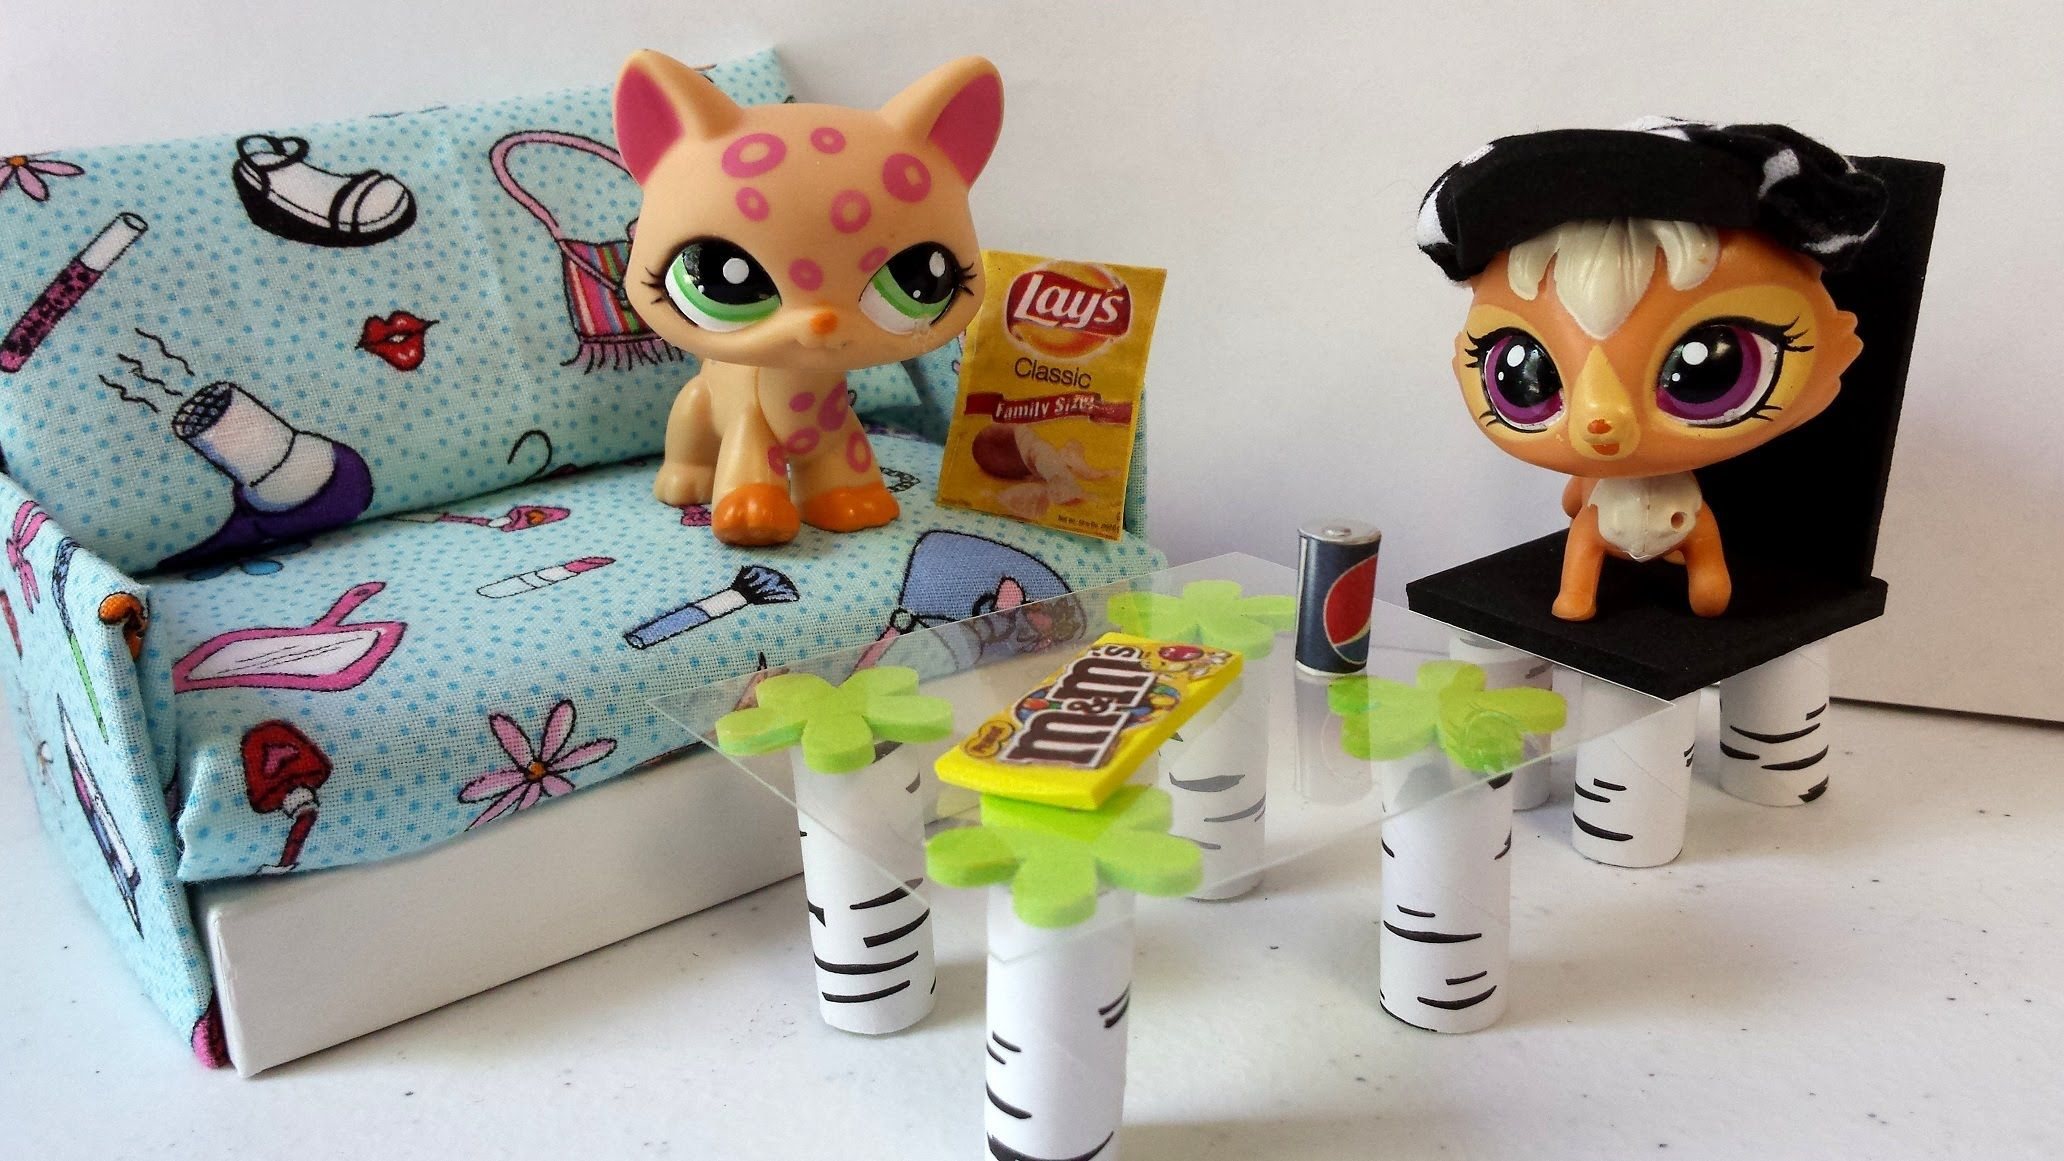 Littlest Pet Shop Bedroom Decor How To Make A Tiny Coffee Table Plus Matching Chair Easy Lps Doll